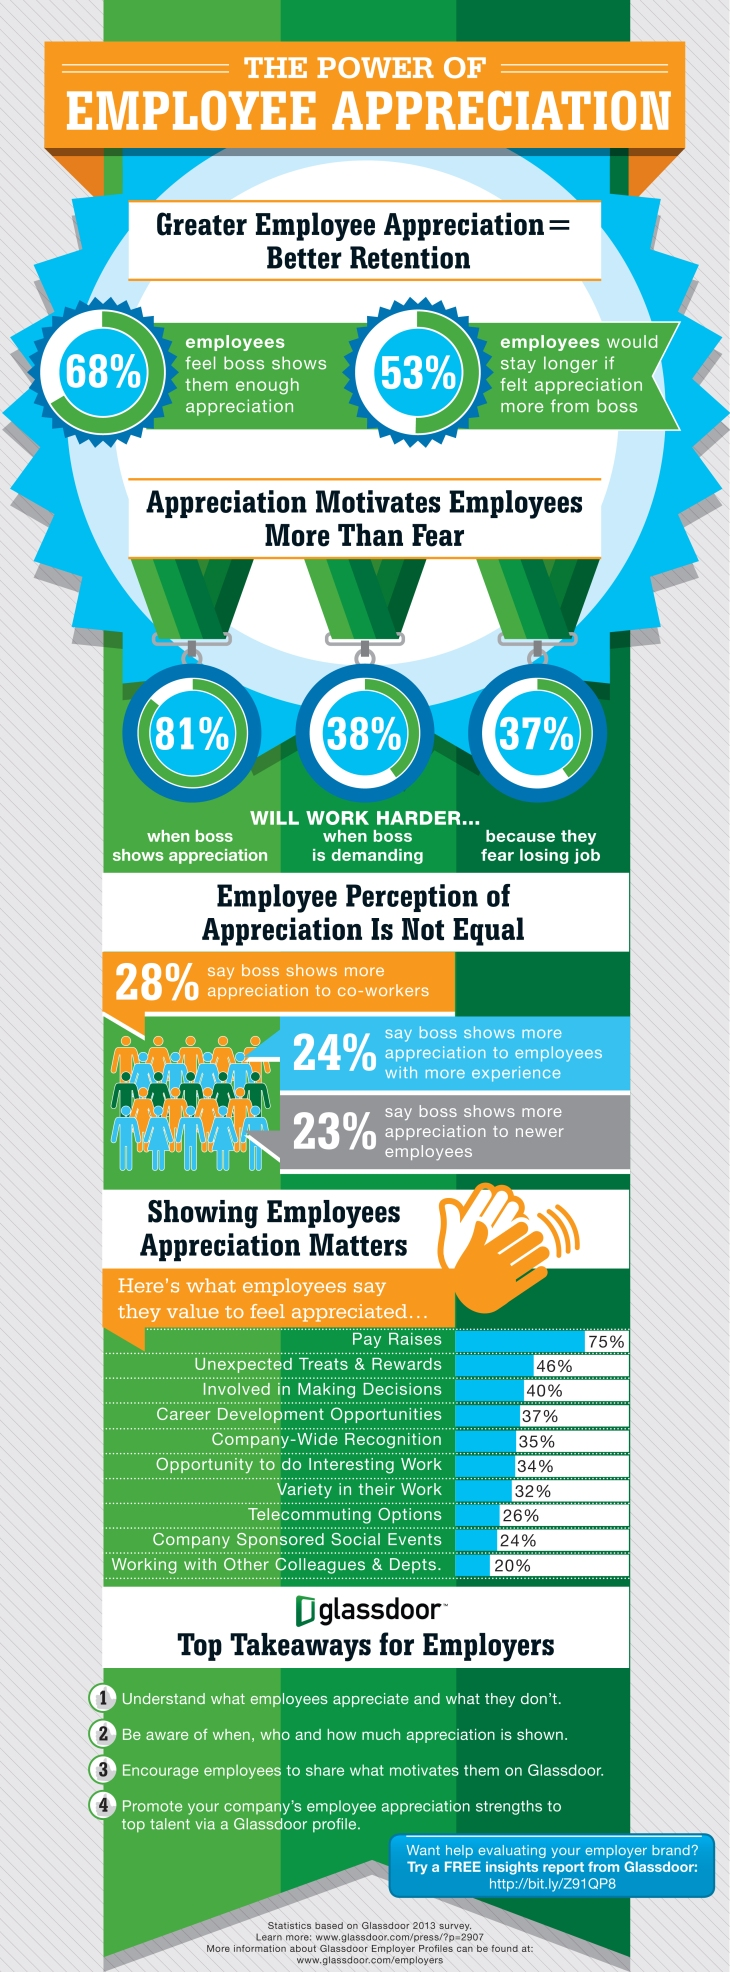 2013-11-2 GD_EmployeeAppreciation_Infographic